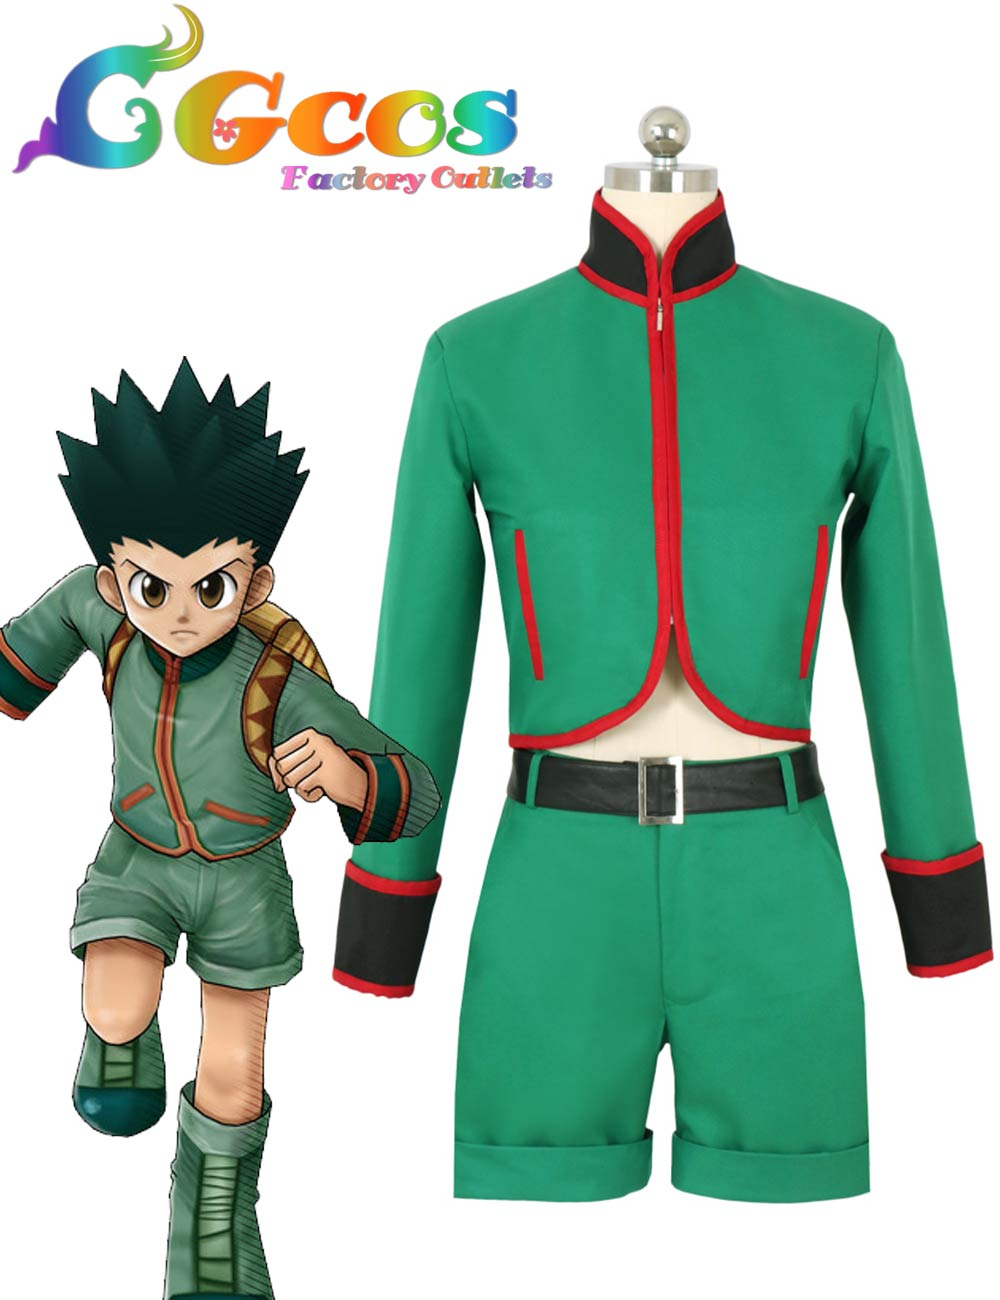 CGCOS Free Shipping Cosplay Costume Hunter X Hunter Gon Freecss New in Stock Retail / Wholesale Halloween